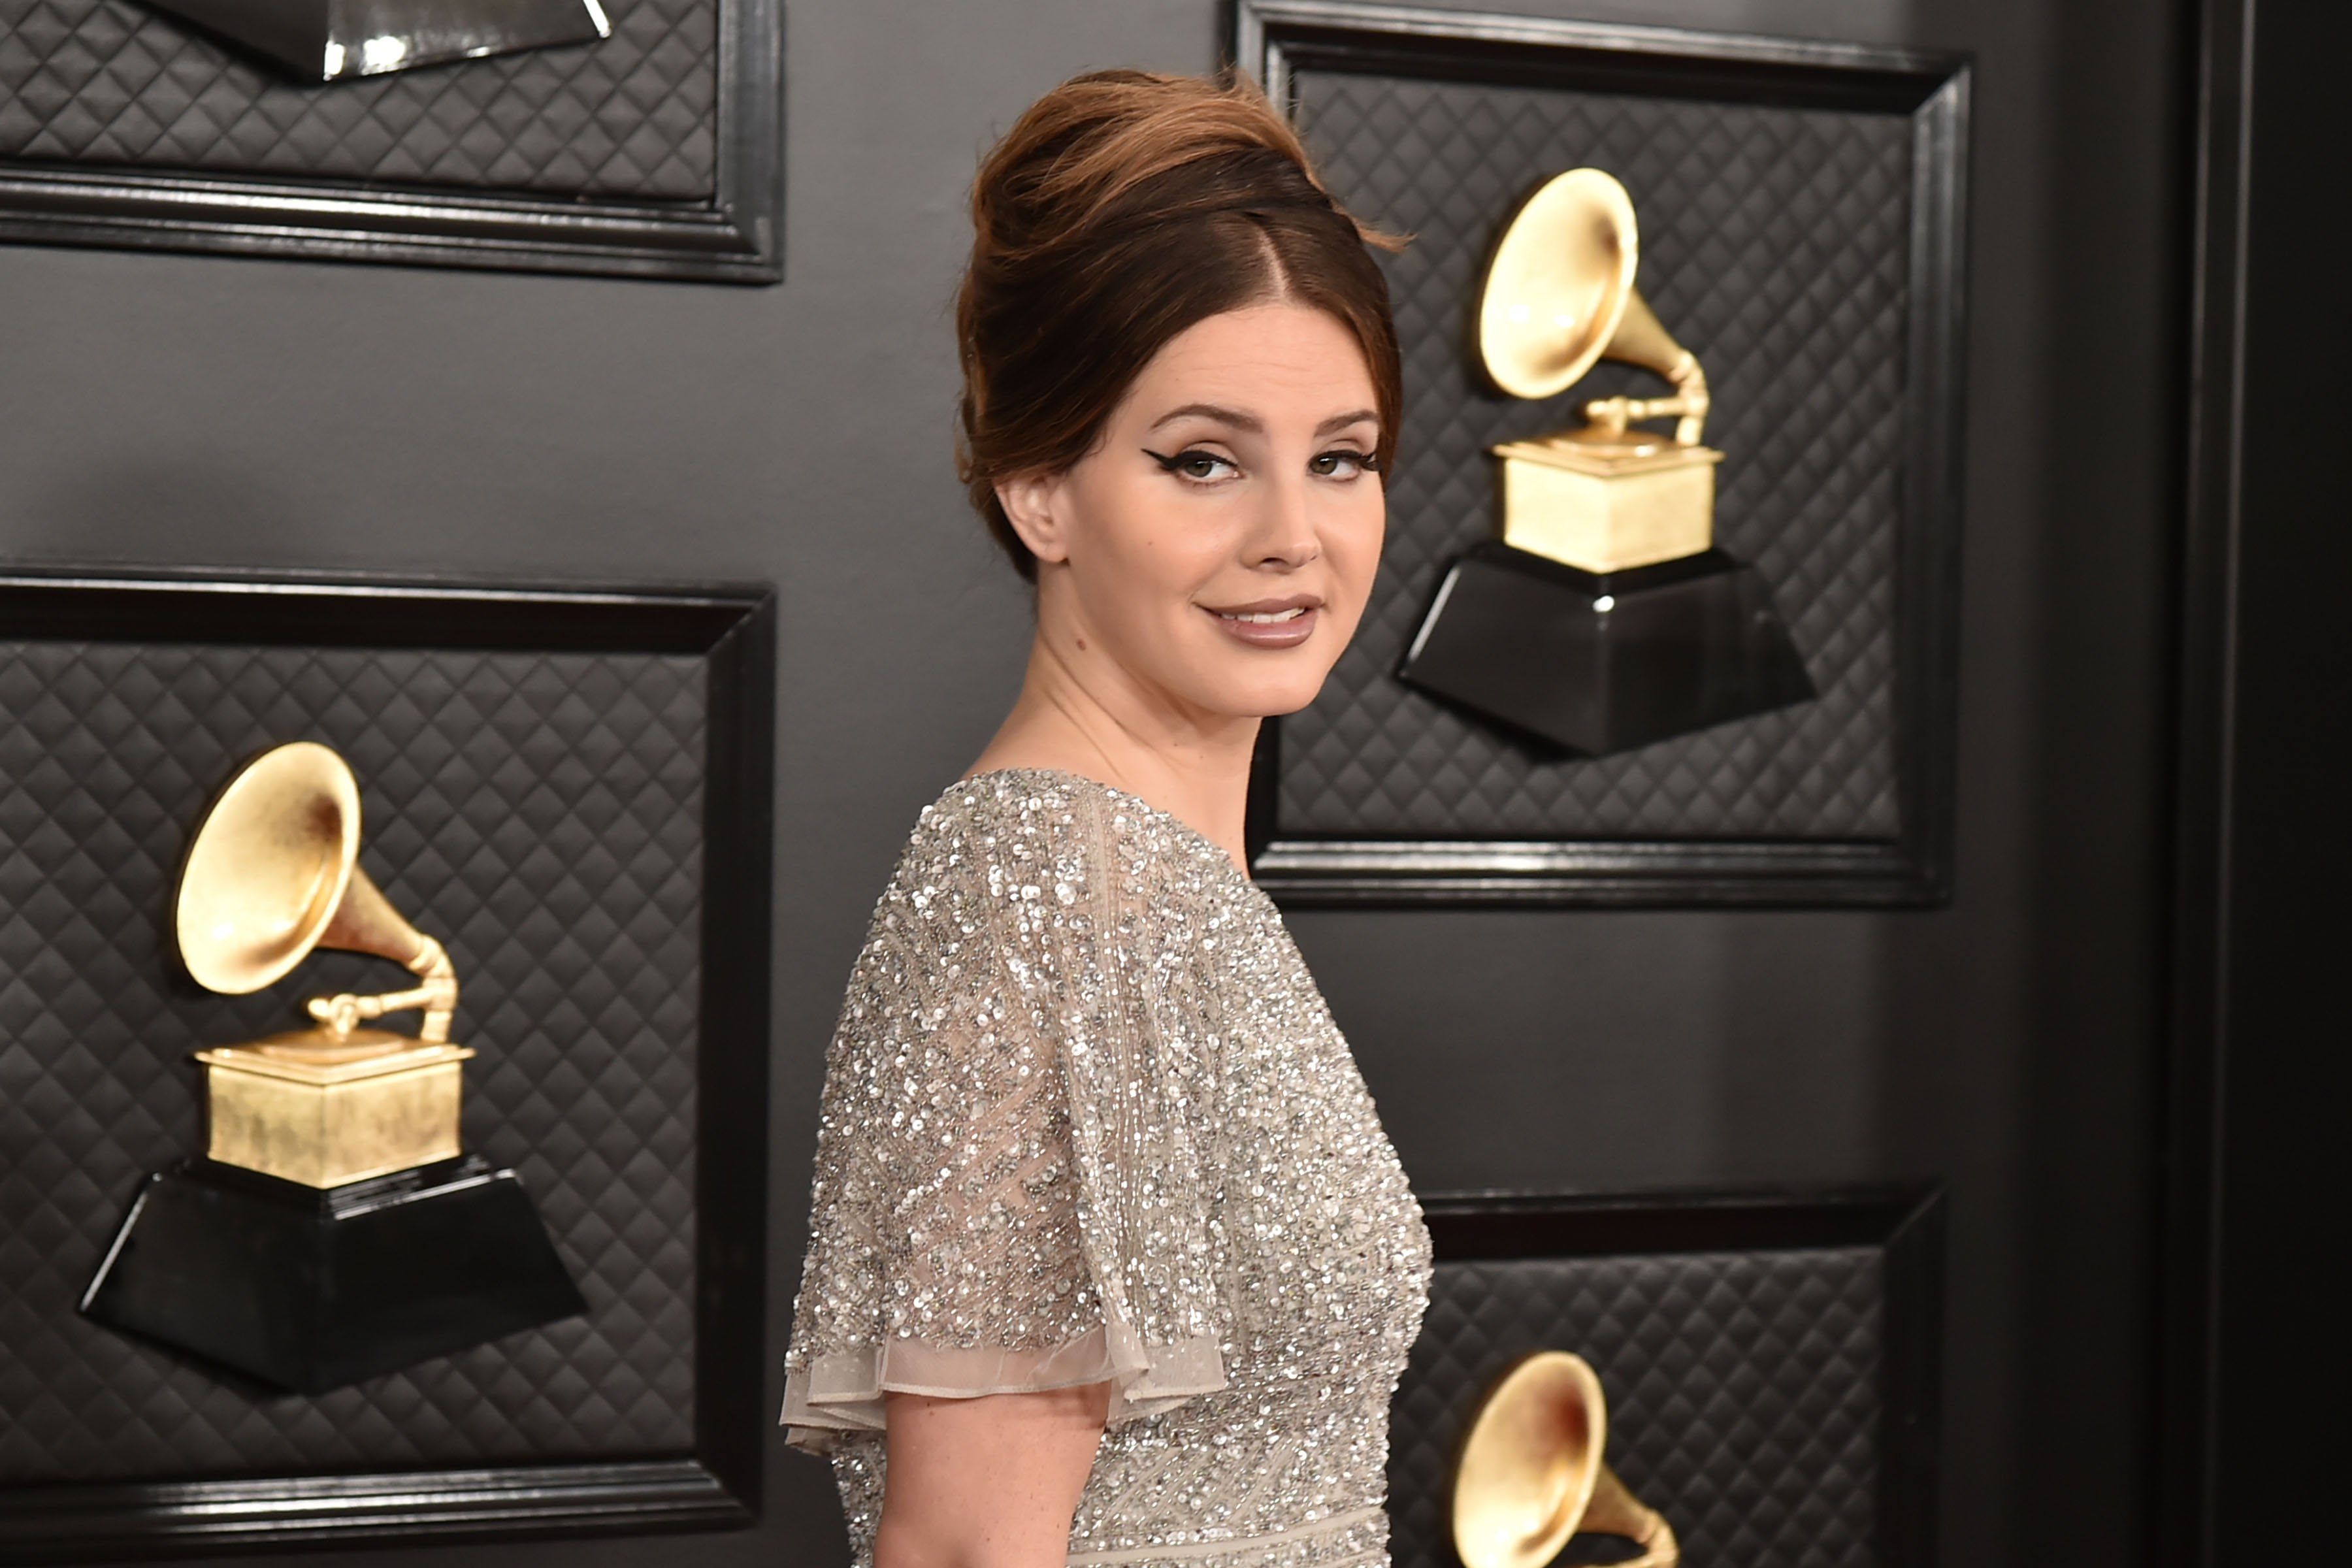 Lana Del Rey at the 62nd Annual Grammy Awards on January 26, 2020 in Los Angeles, California. | Photo: Getty Images